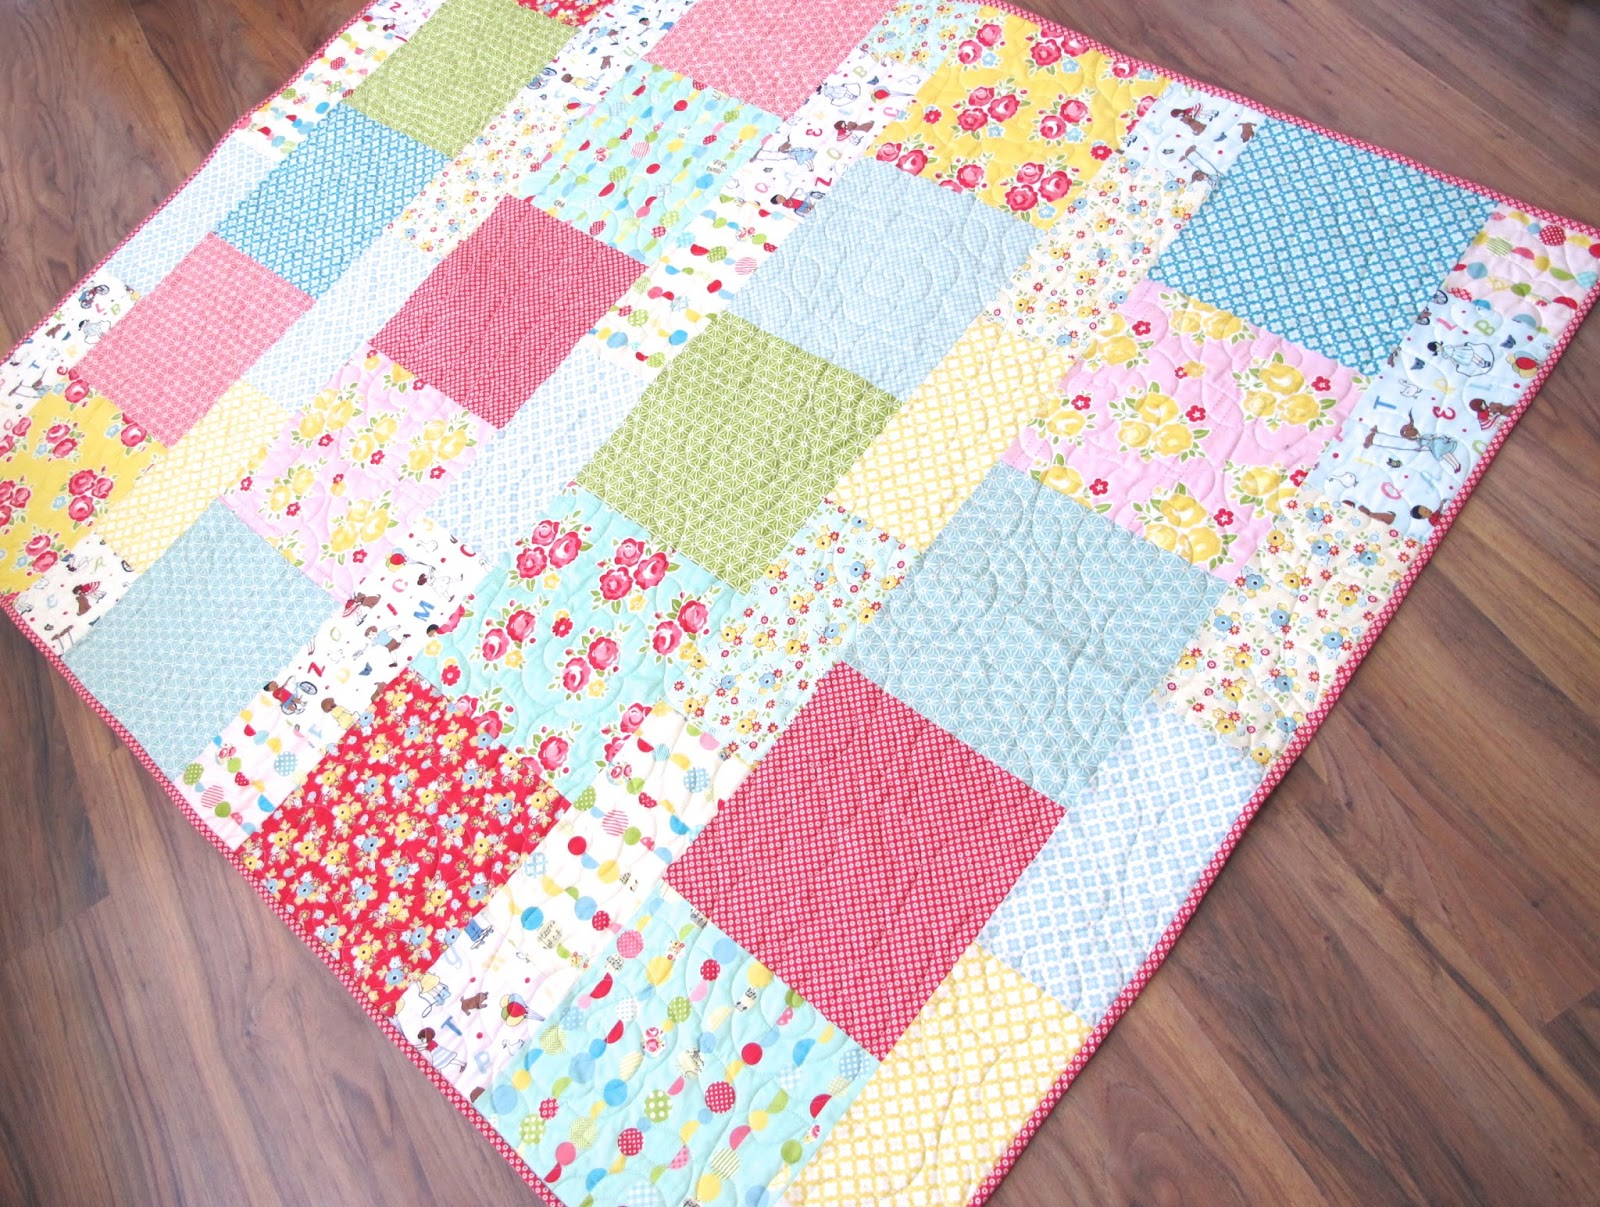 Layer Cake Quilt Definition : Bee In My Bonnet: Layer Cake Lemonade Quilt - and a ...